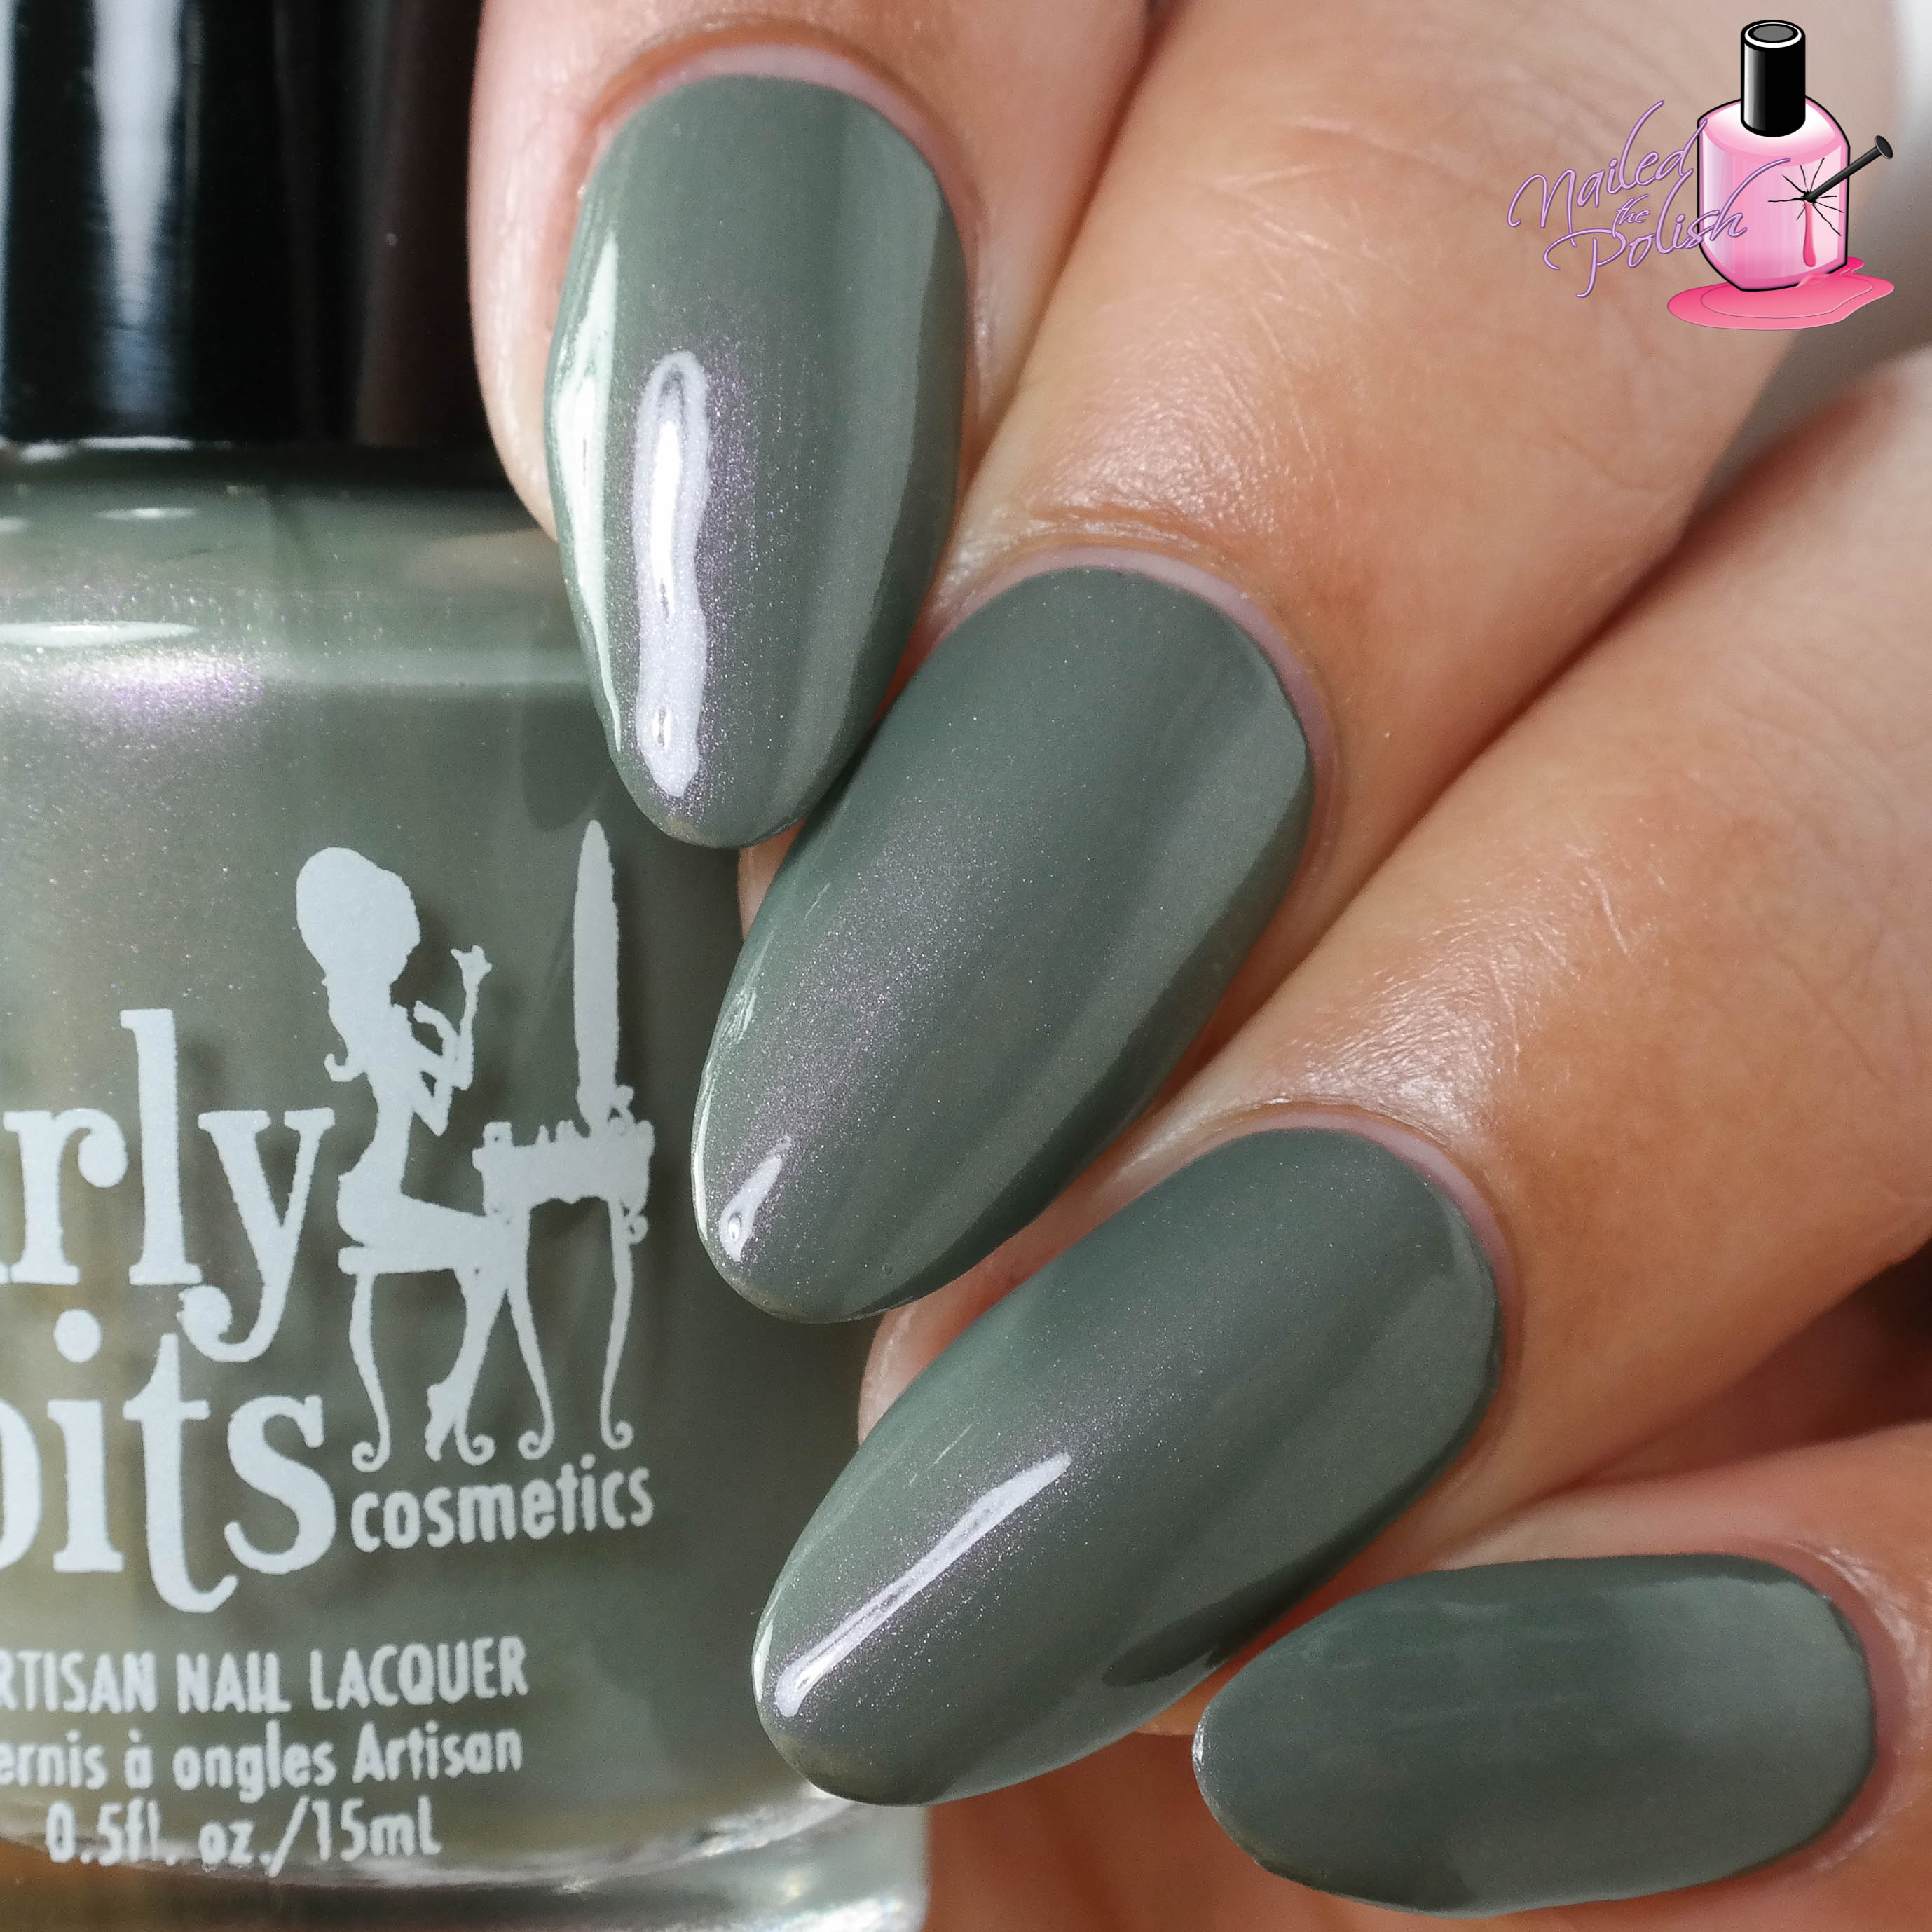 Girly Bits Cosmetics Hocus Pocus Fall 2015 Collection | nailedthepolish